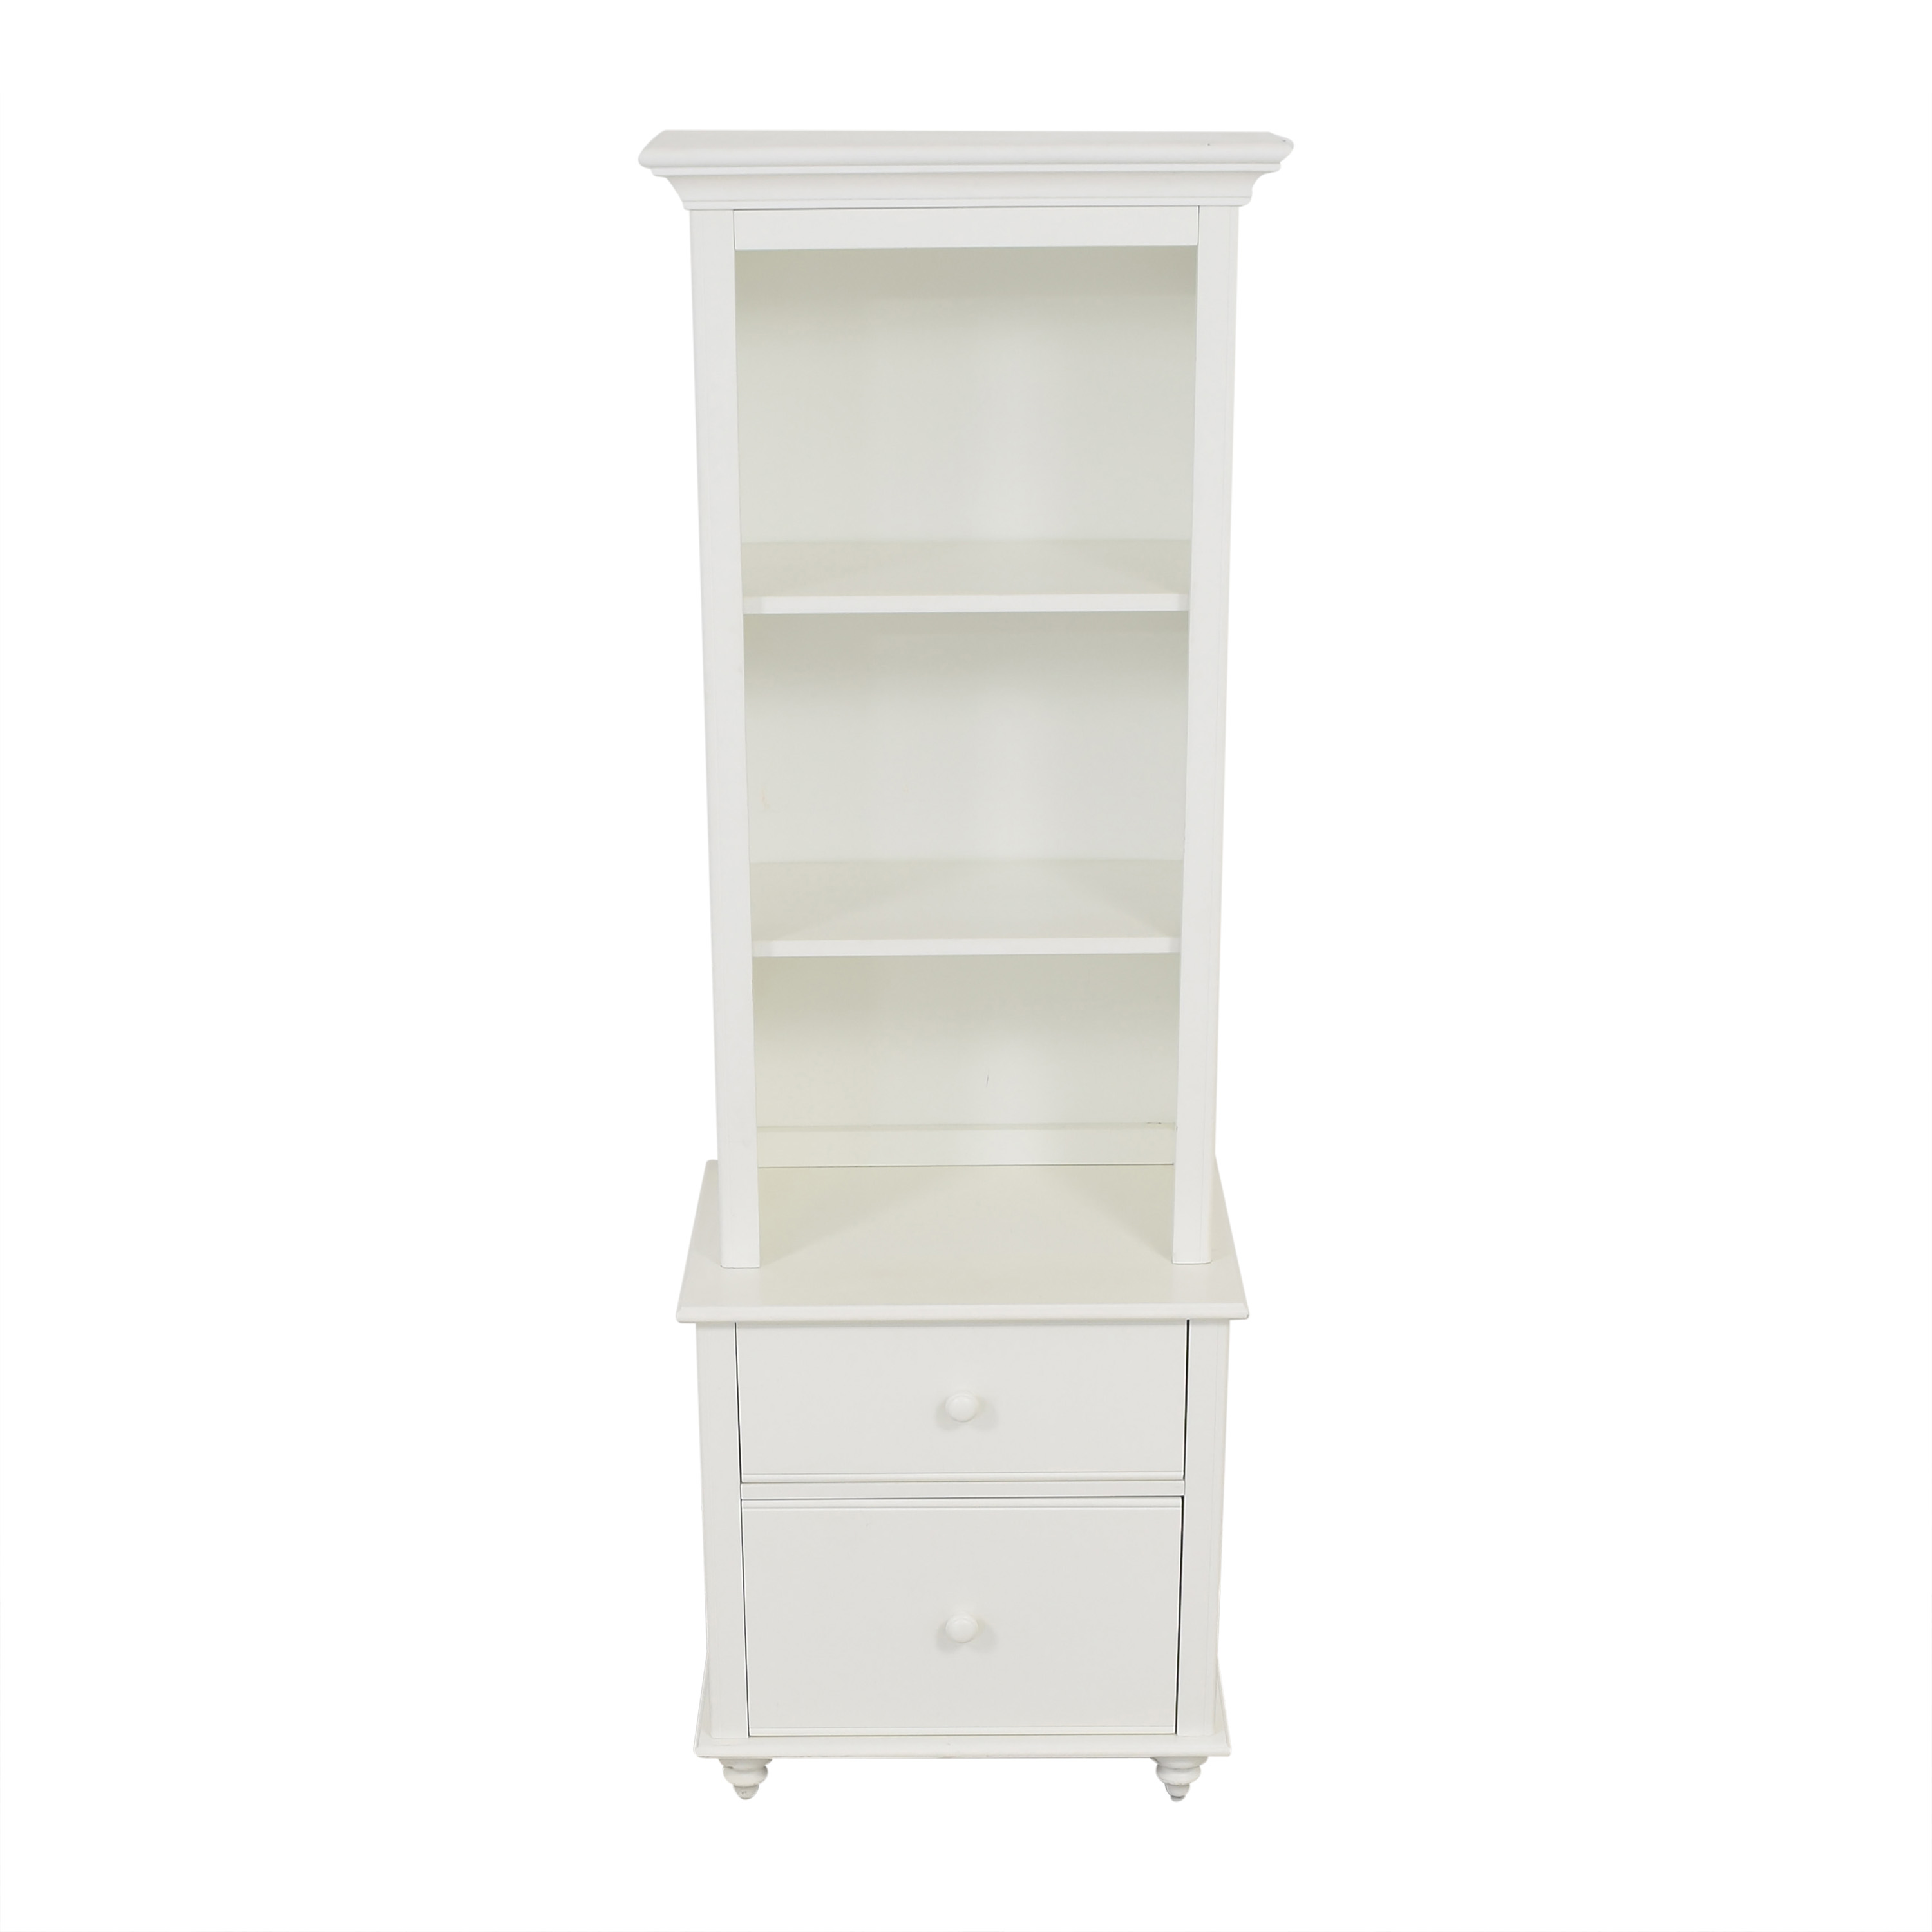 Land of Nod Land of Nod Library Chest Hutch